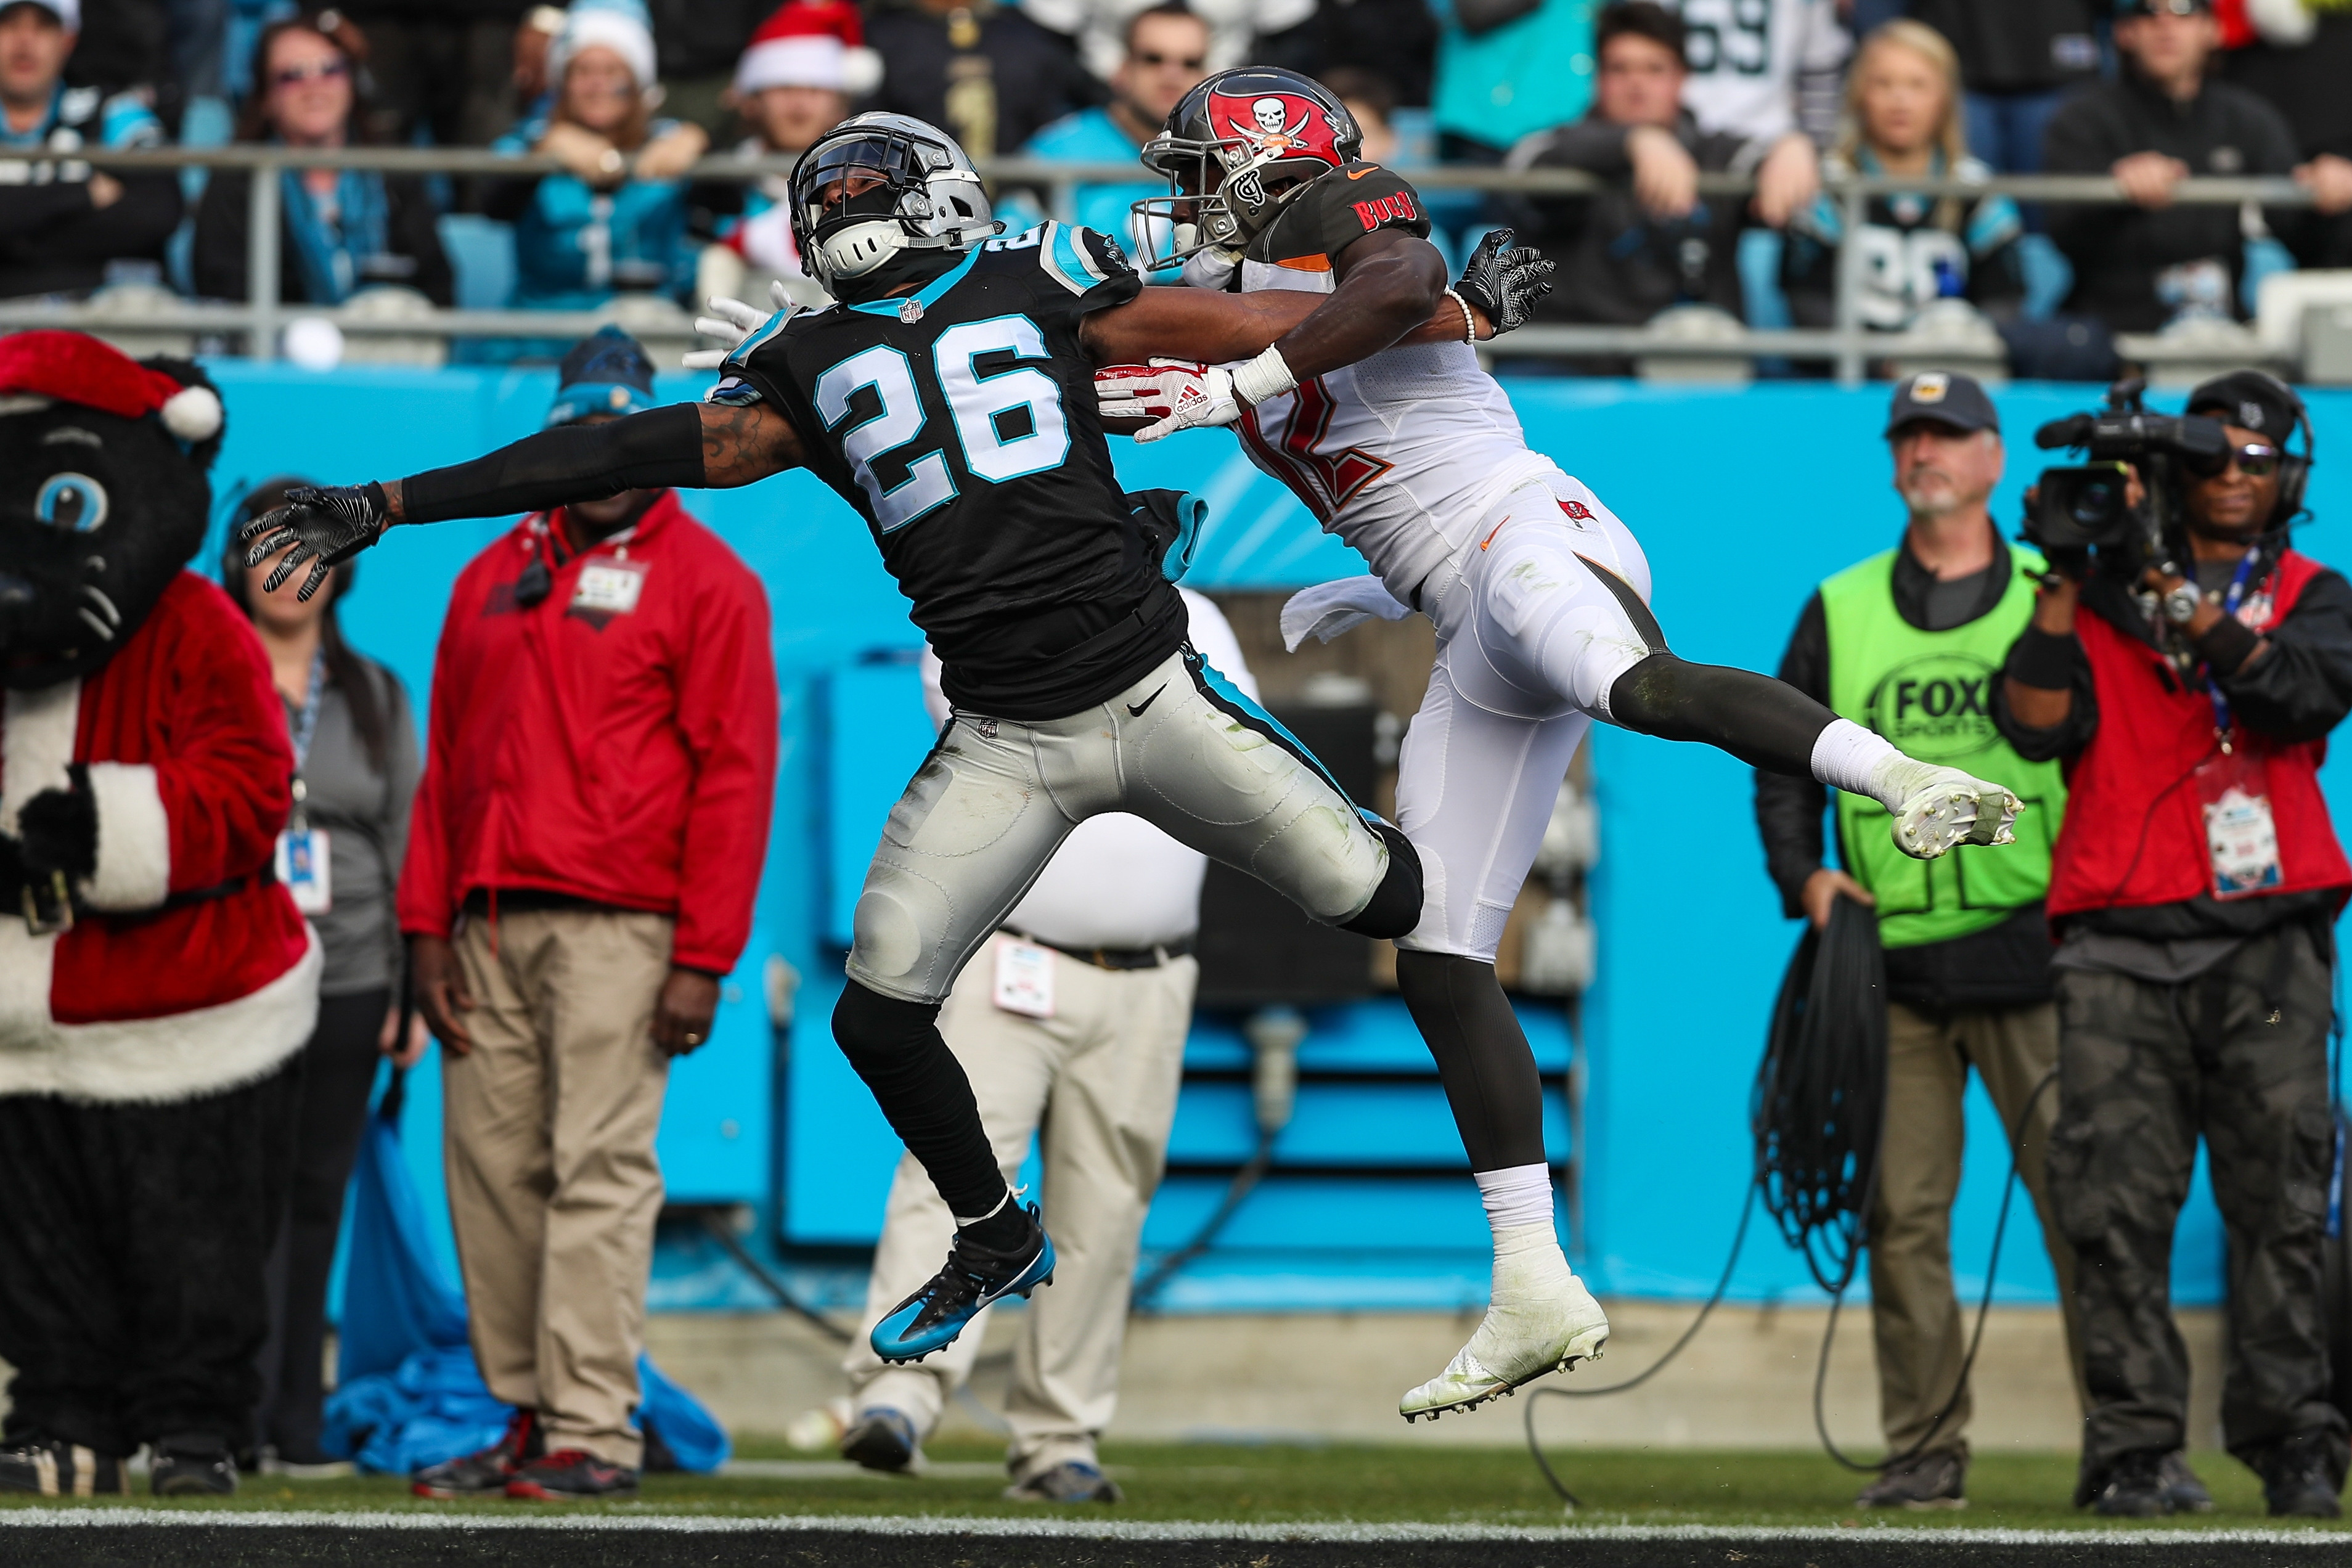 NFL: DEC 24 Buccaneers at Panthers